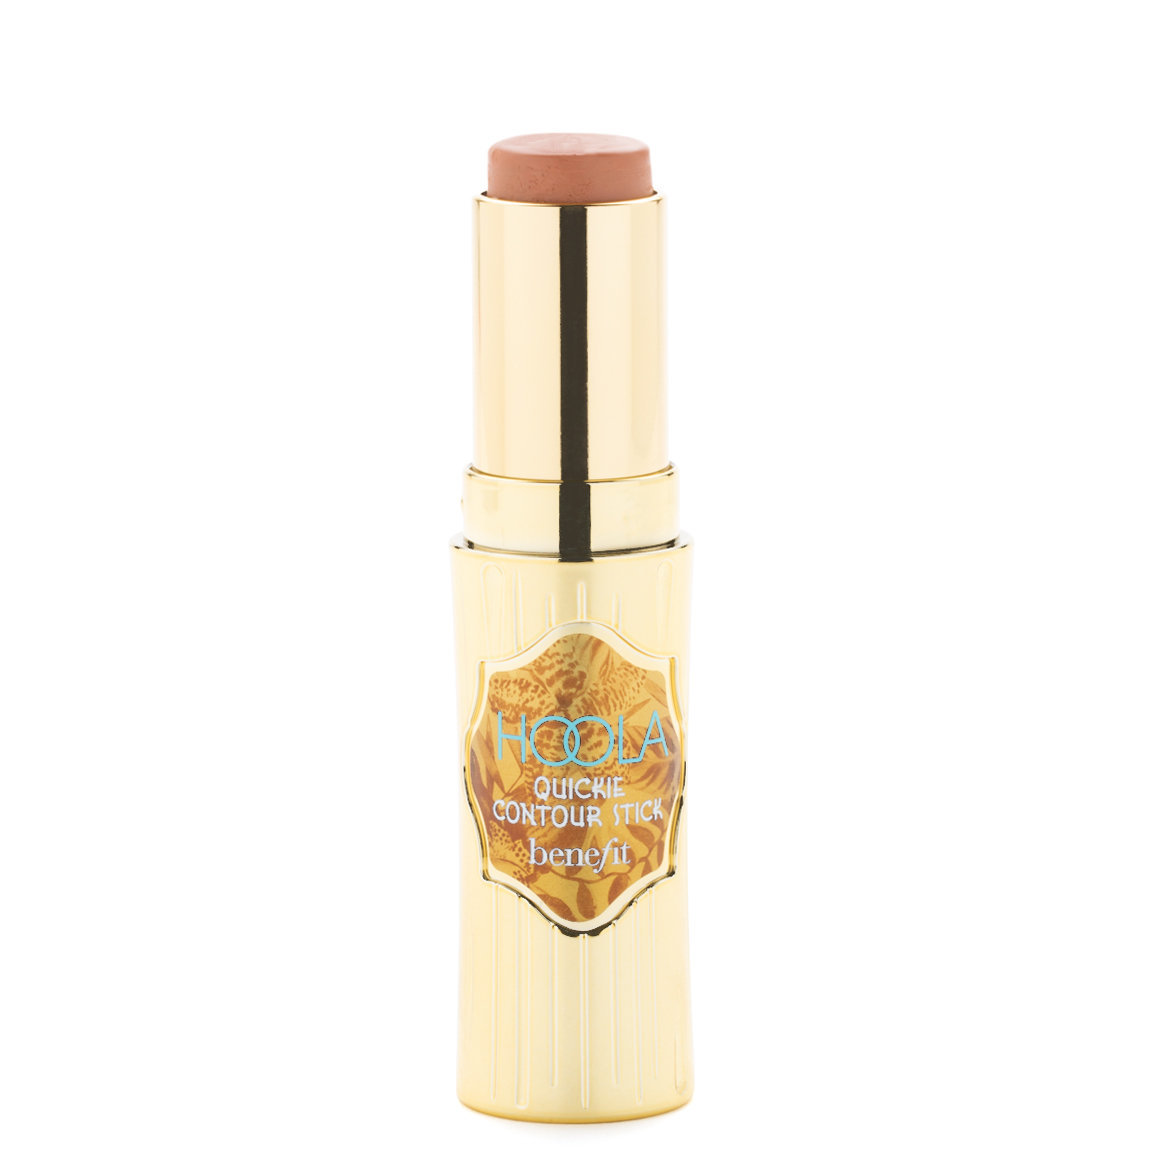 Benefit Cosmetics Hoola Quickie Contour Stick product smear.